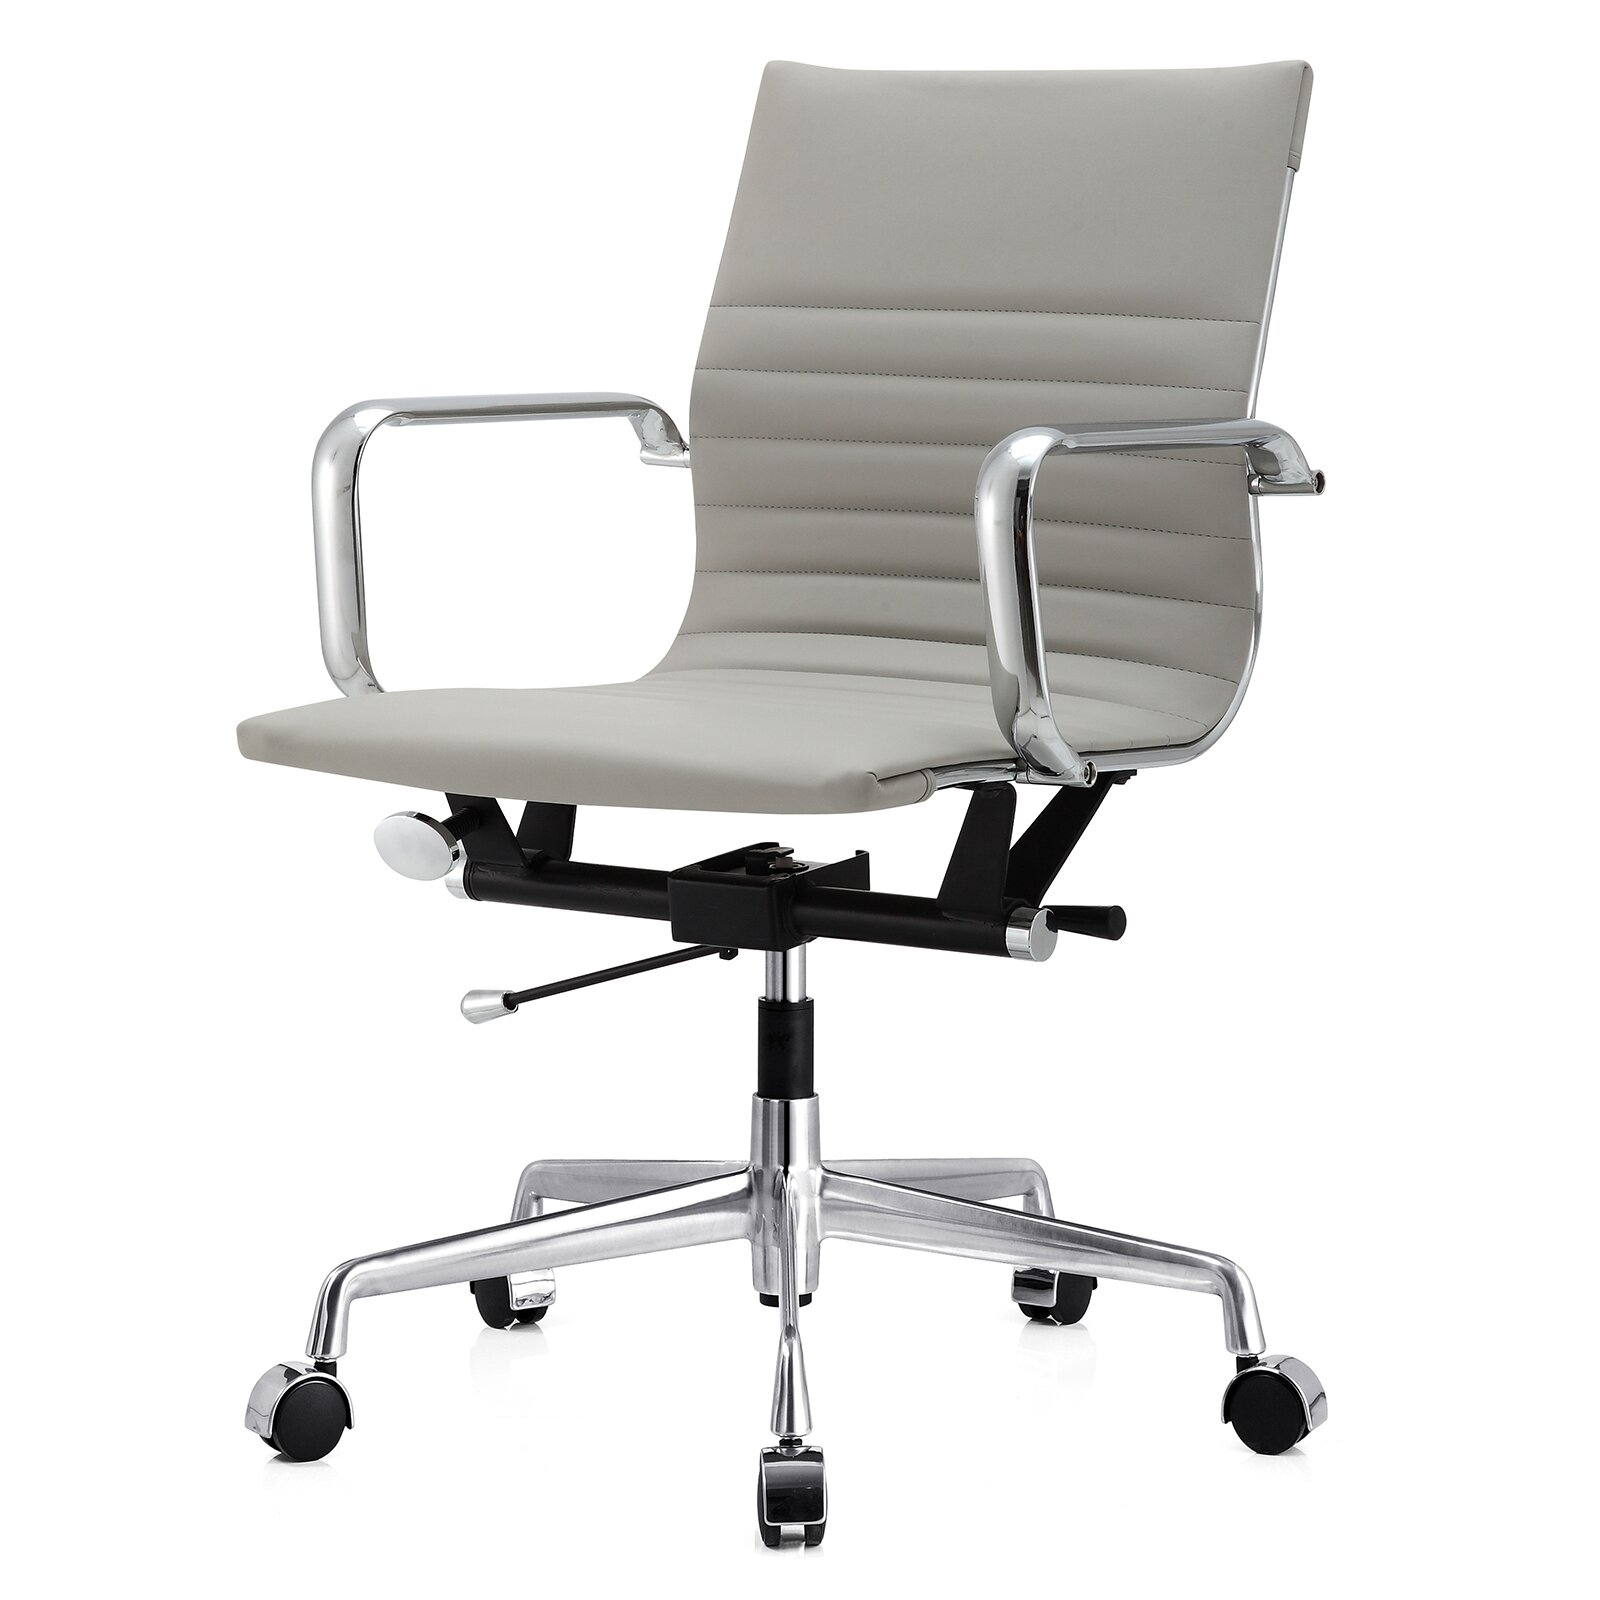 Modern leather office chair - Modern Leather Office Chair 1